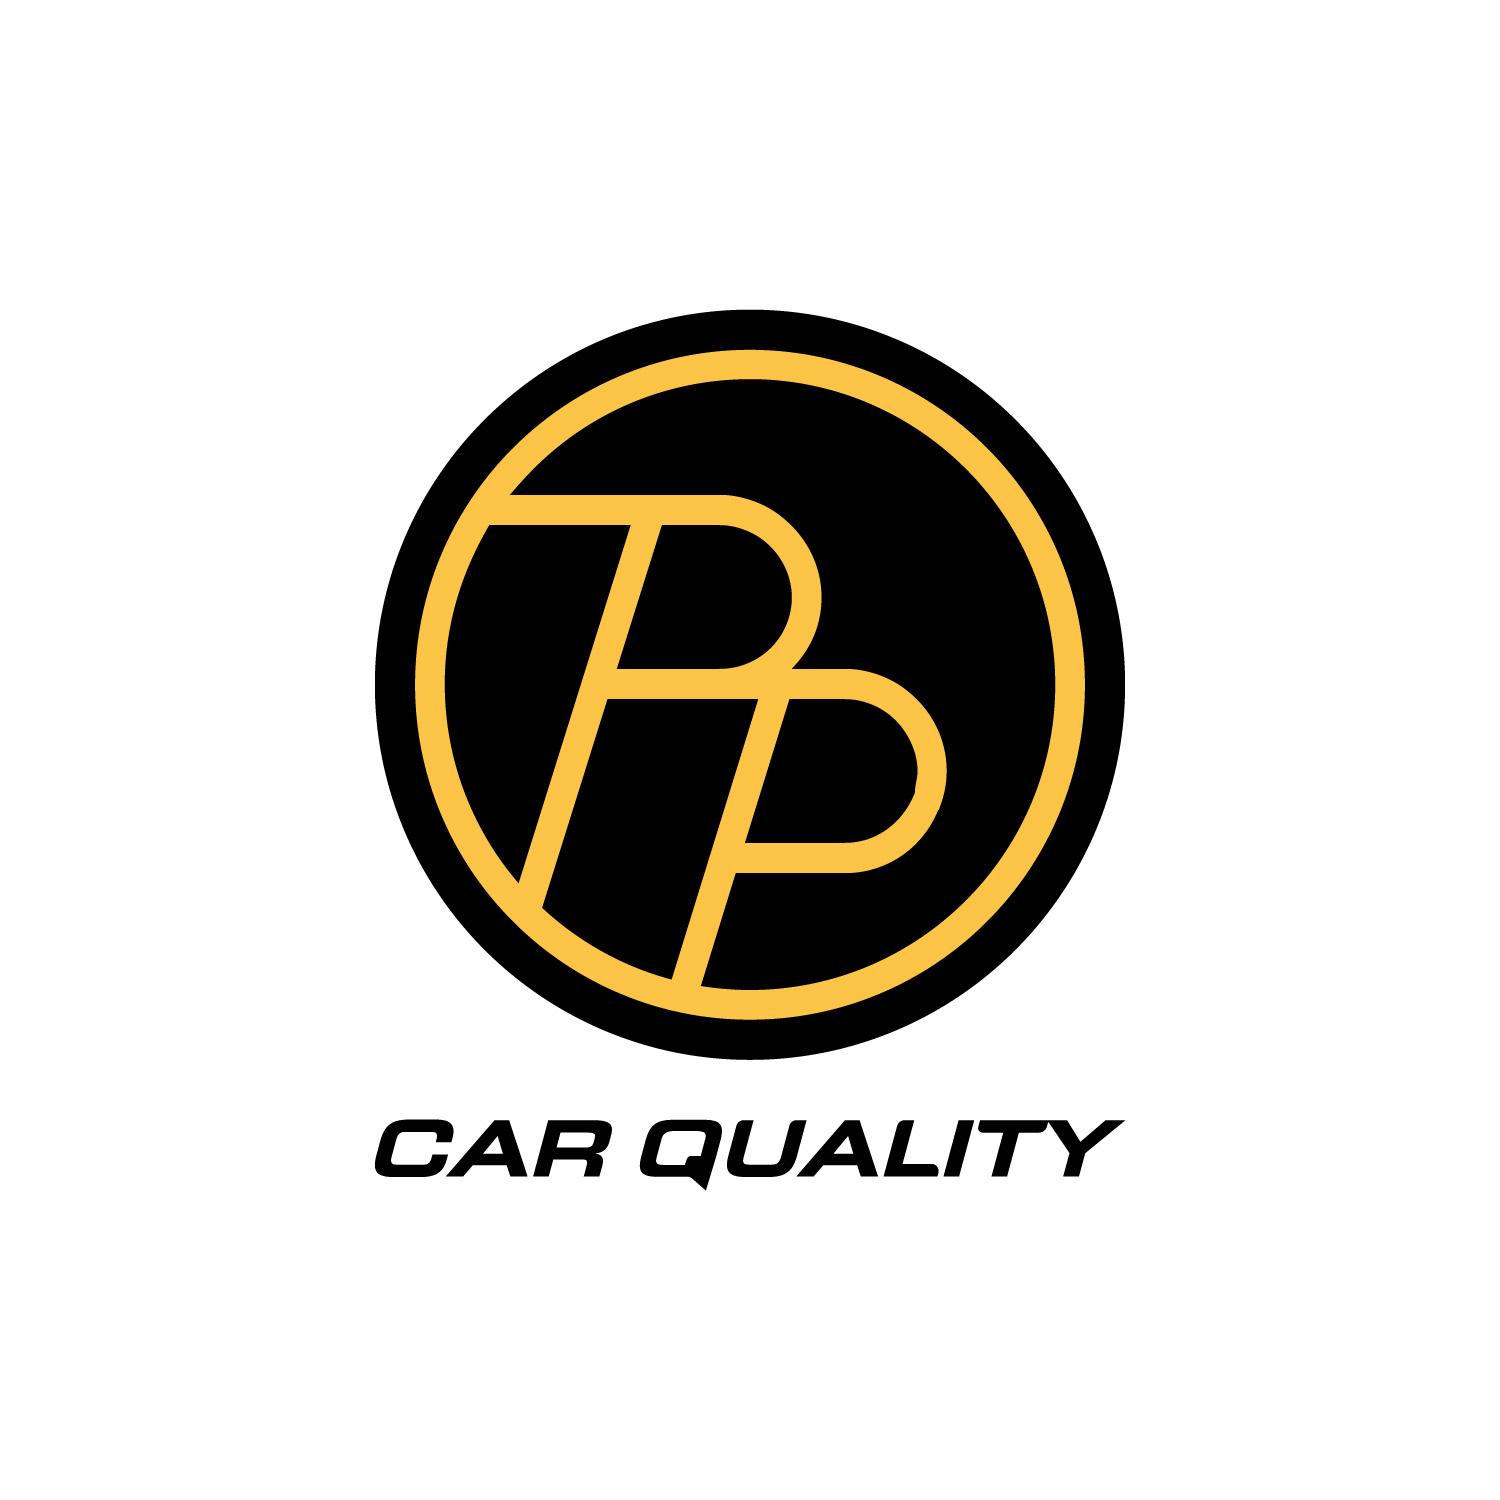 PP CarQuality